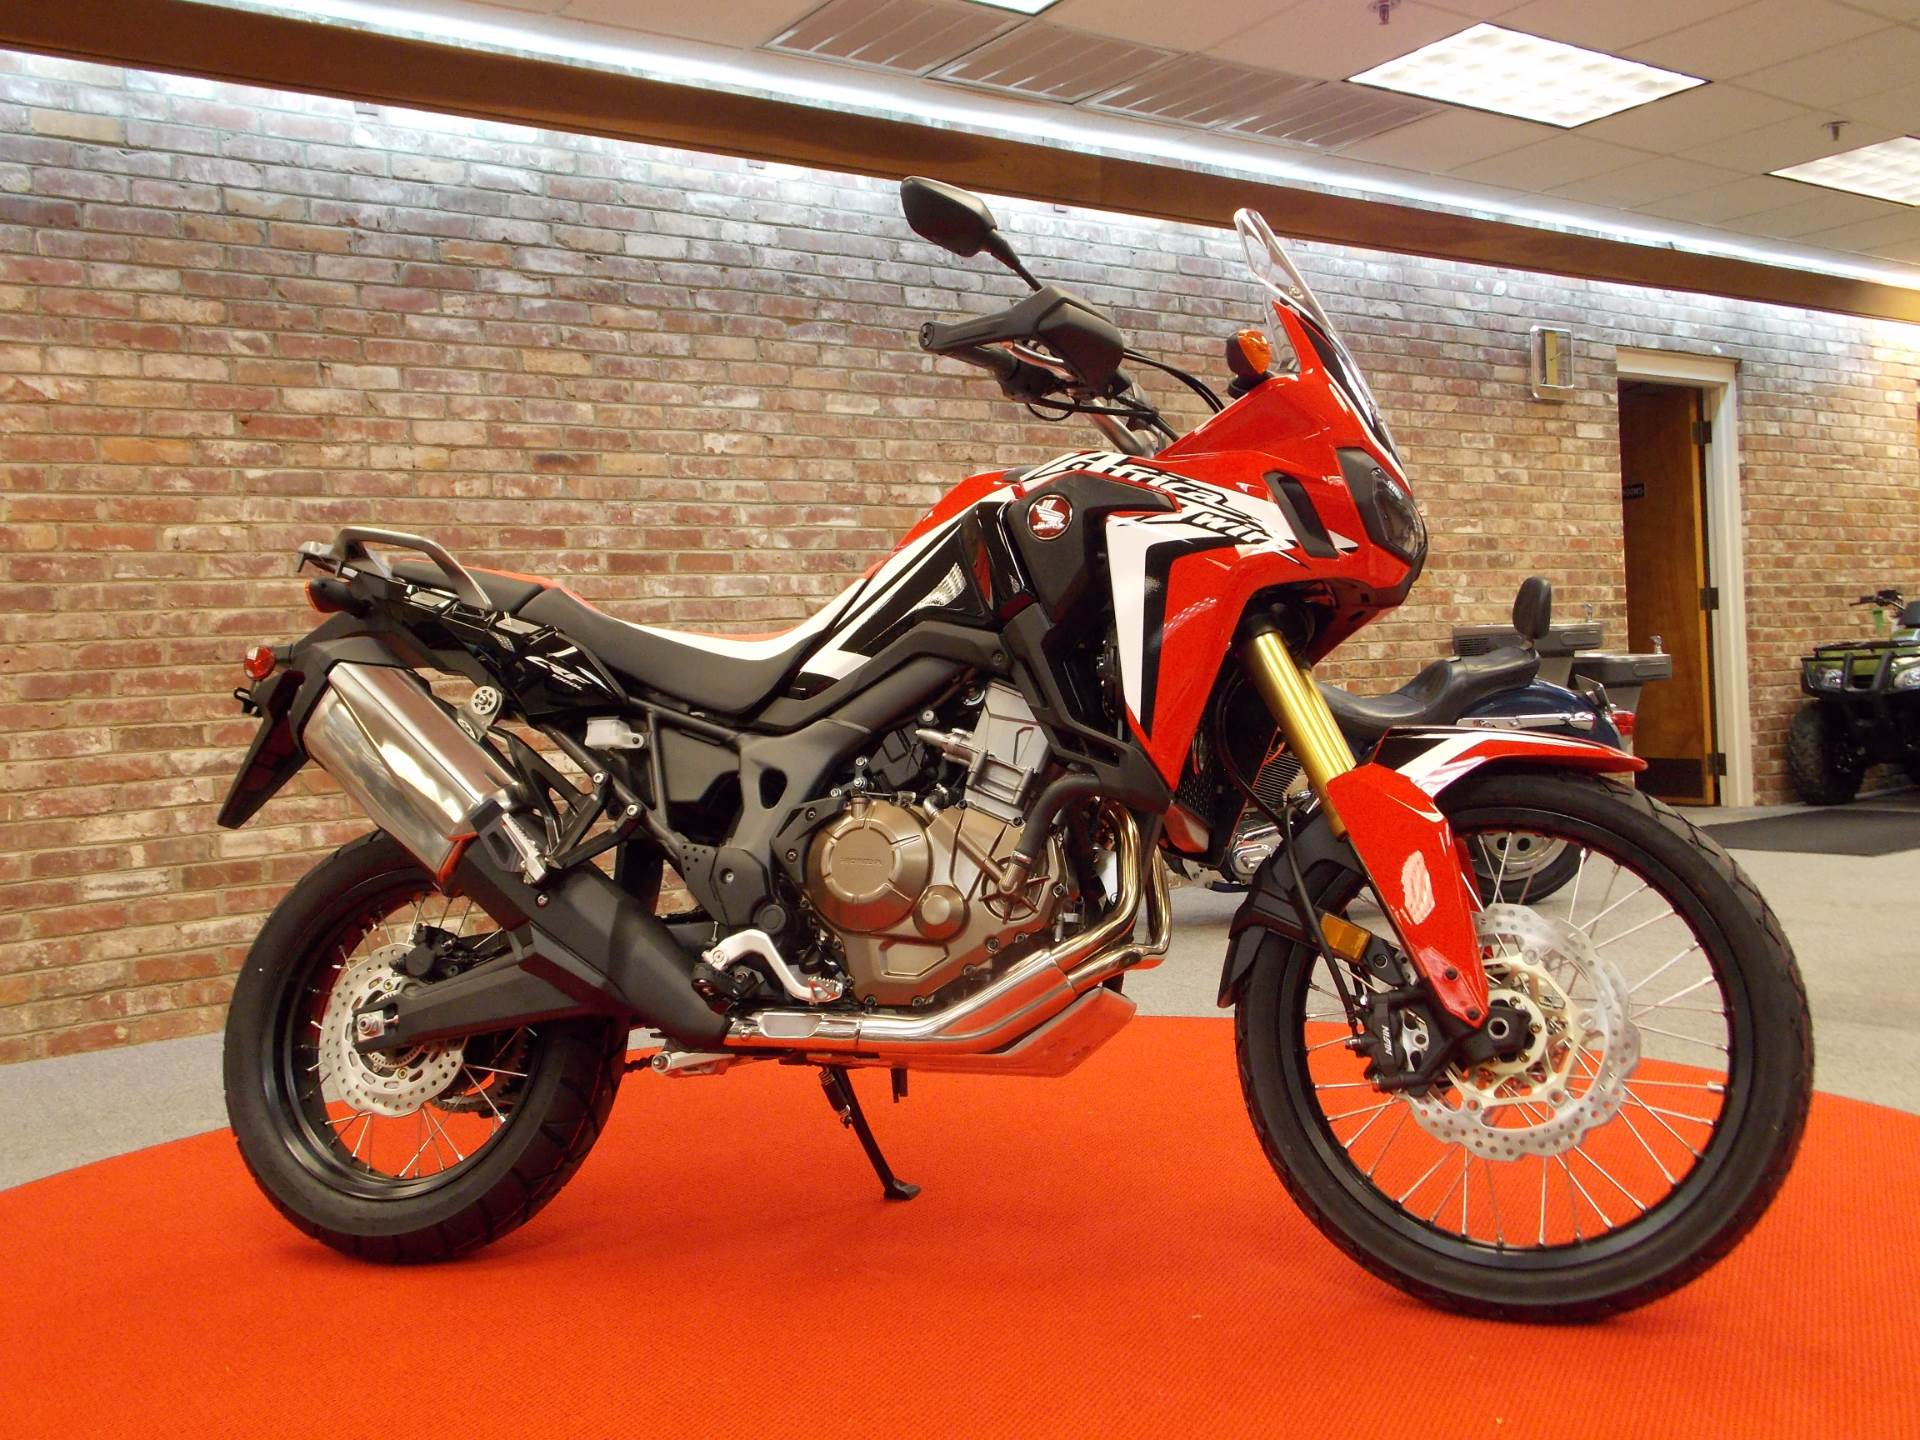 new 2017 honda africa twin motorcycles in statesville, nc | stock